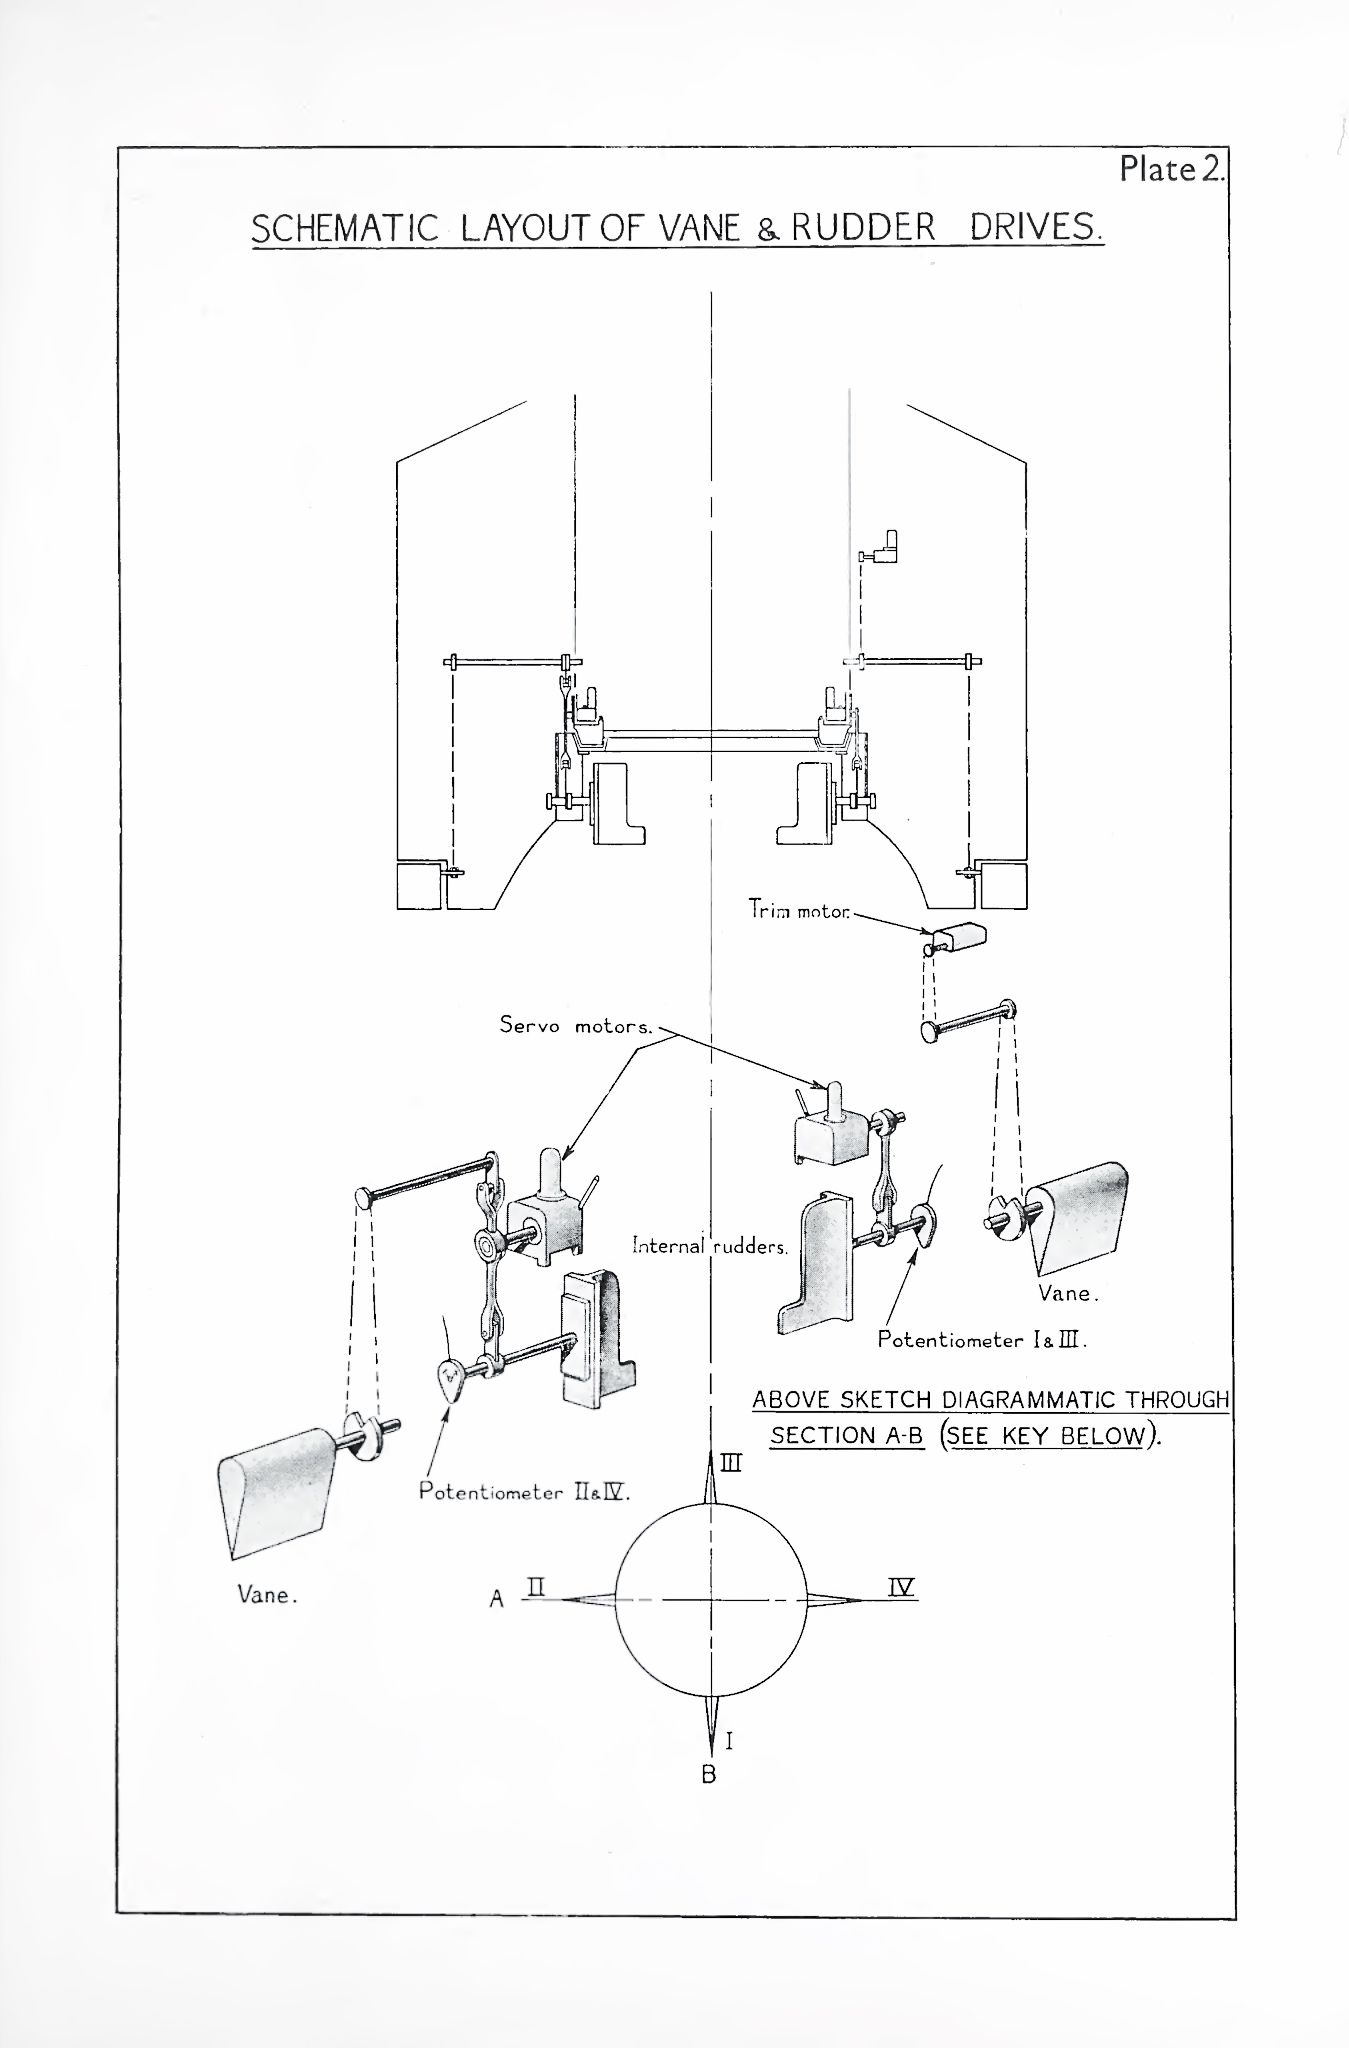 hight resolution of rudders and jetvanes of the a4 v2 rocket